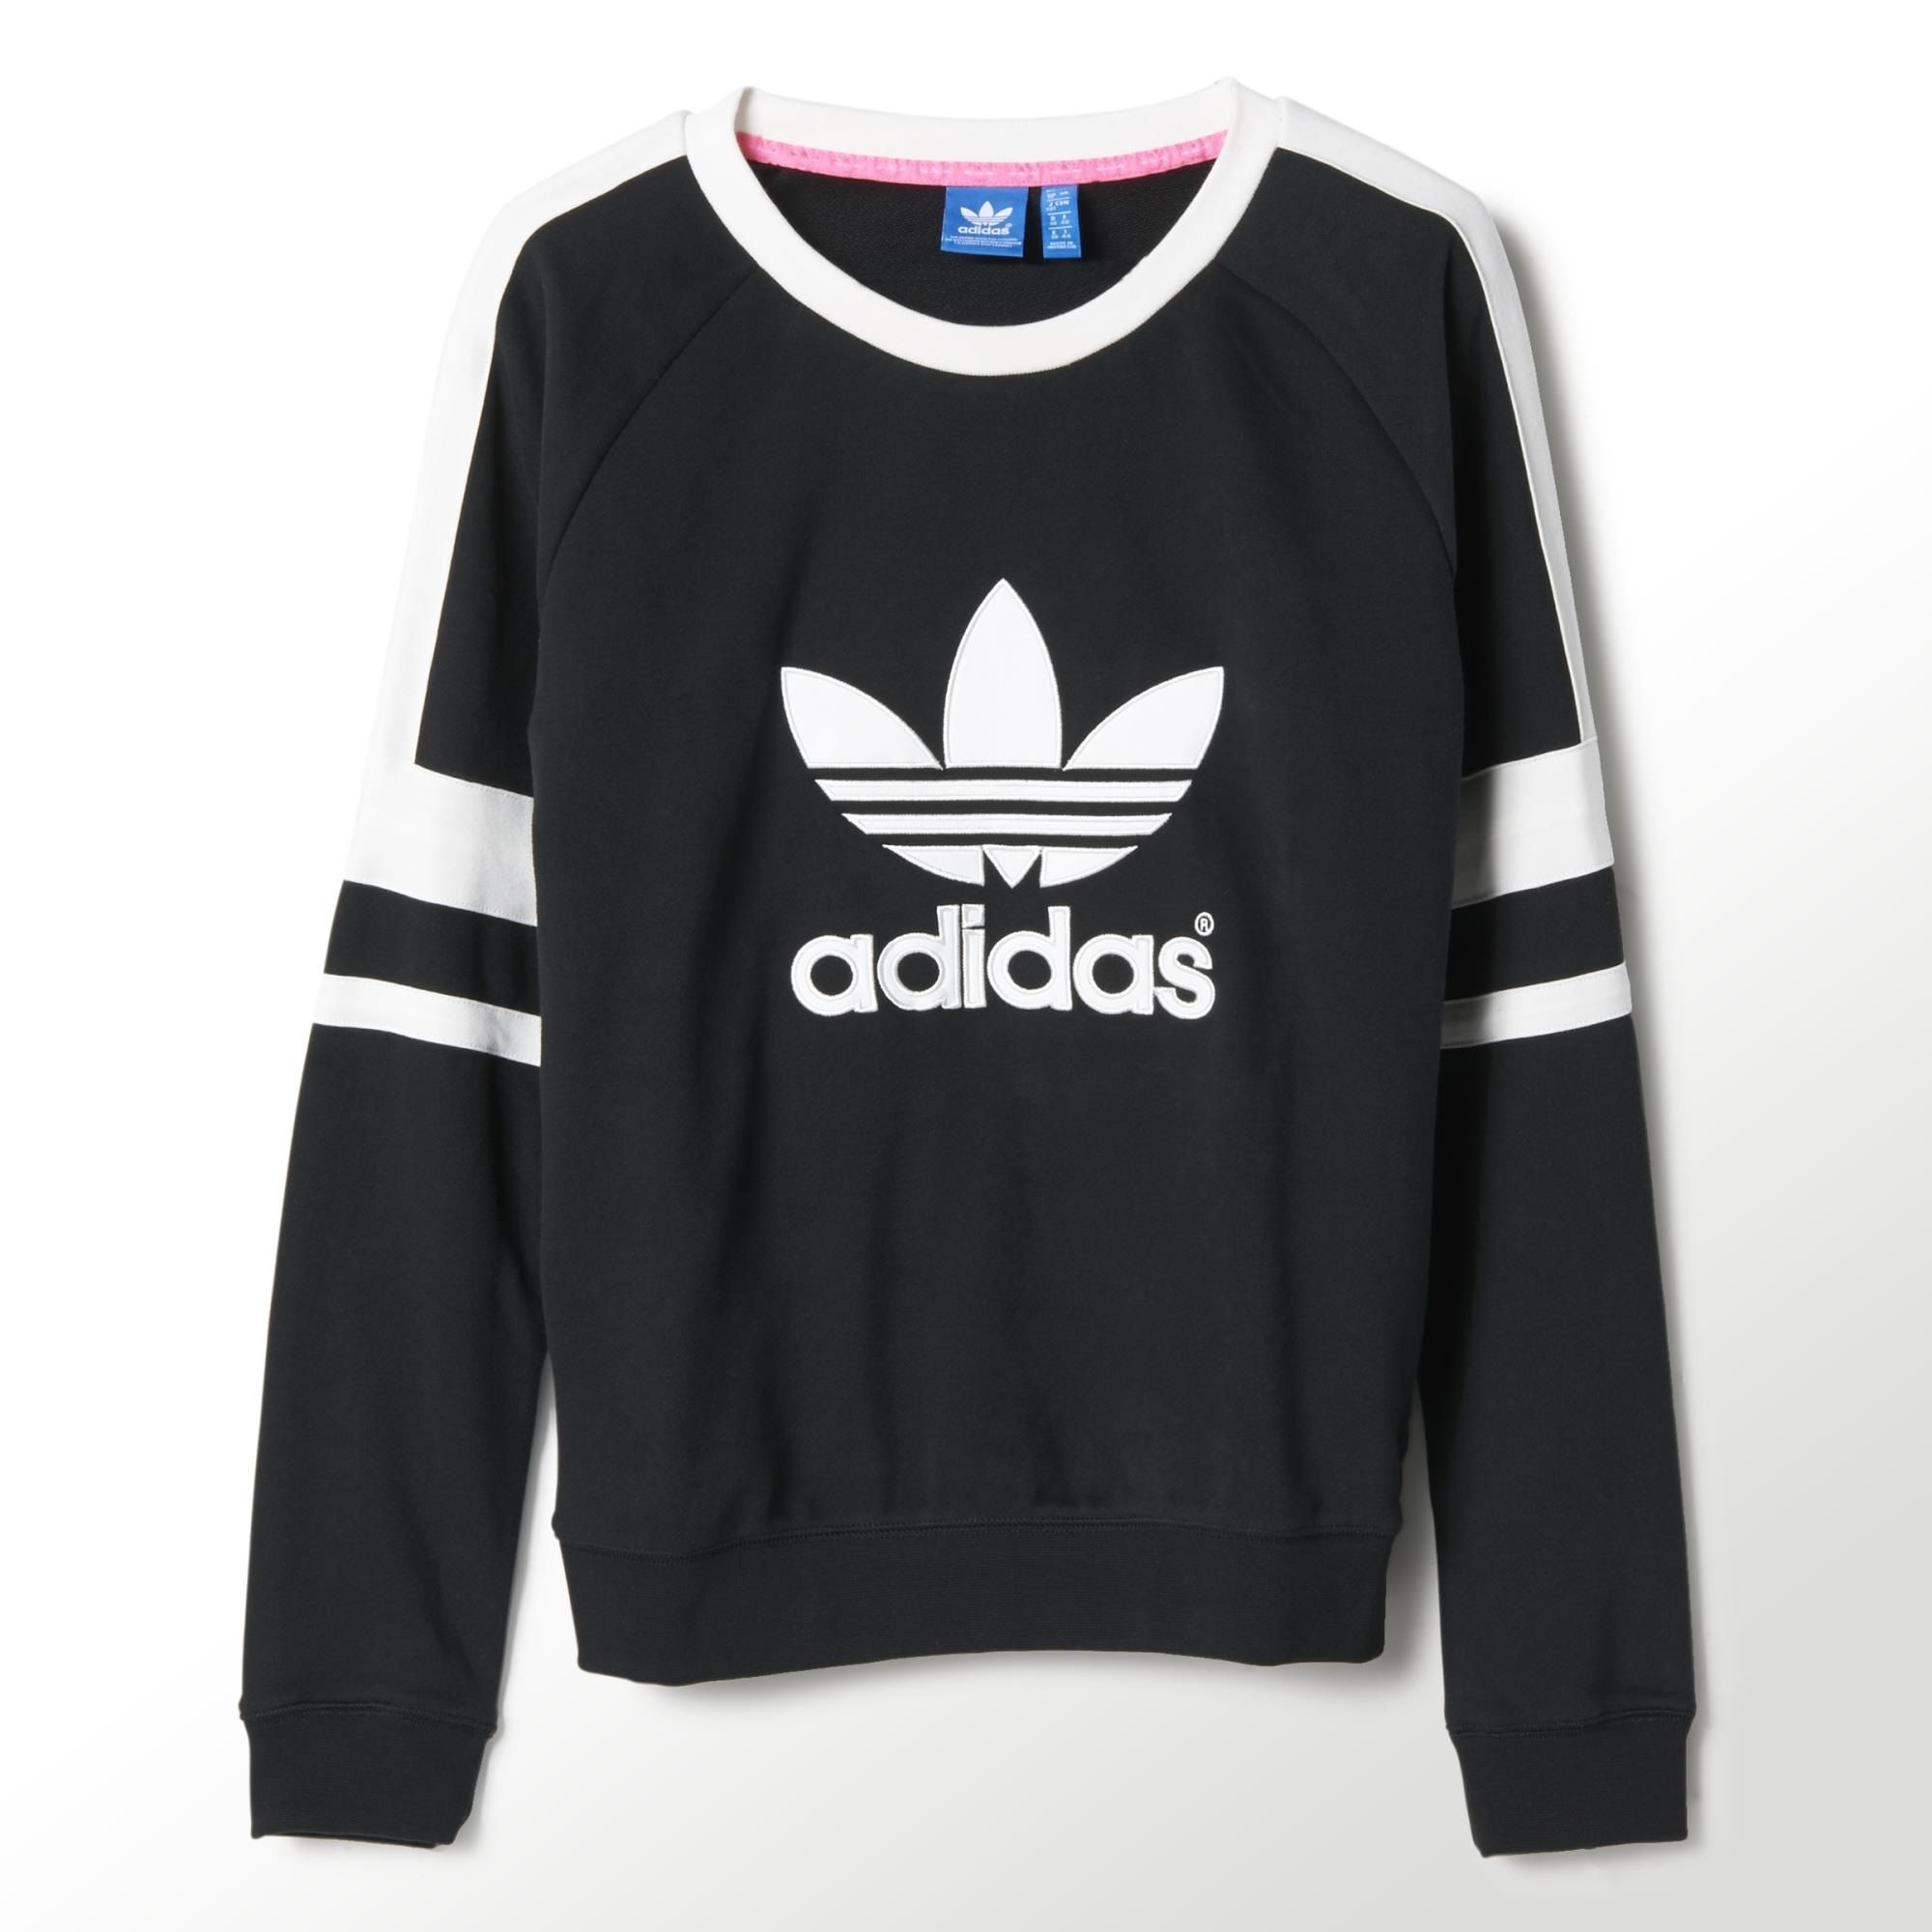 adidas women 39 s logo crew sweatshirt adidas canada. Black Bedroom Furniture Sets. Home Design Ideas